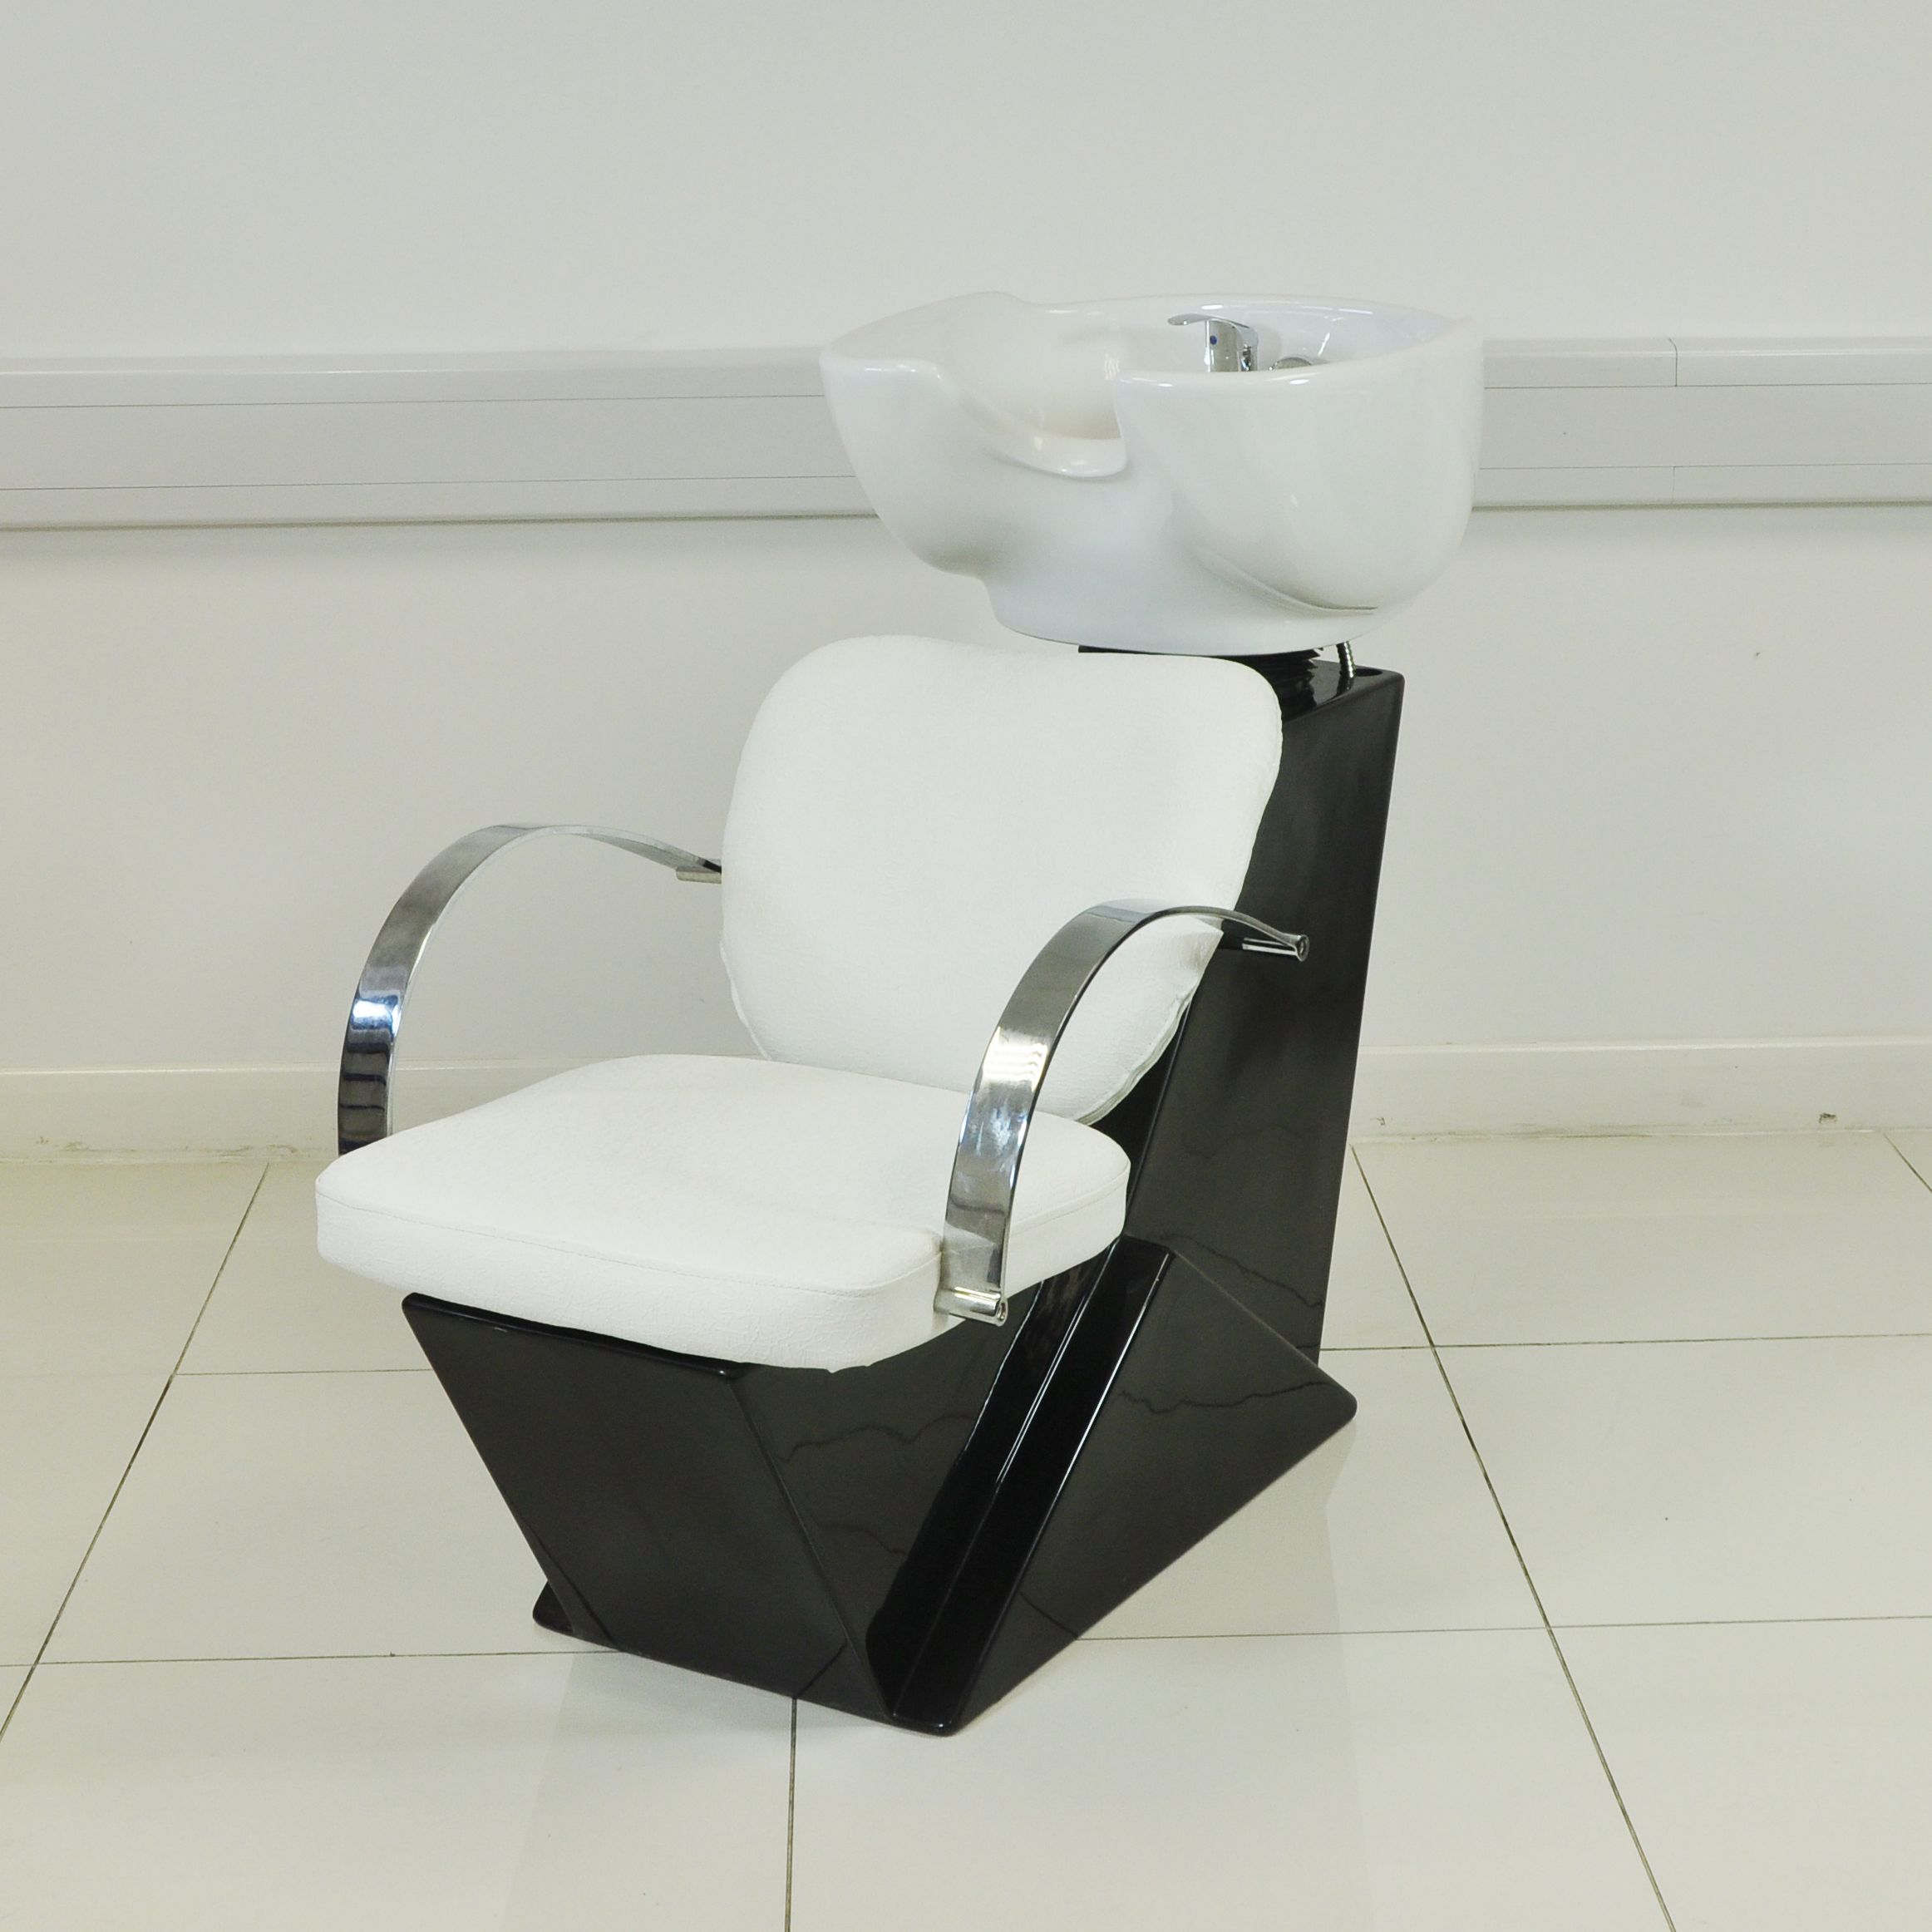 Shampoo Sink And Chair Doll Table Chairs For 18 Inch Dolls Modern White Hair Salon Unit Suites In 2019 Salons